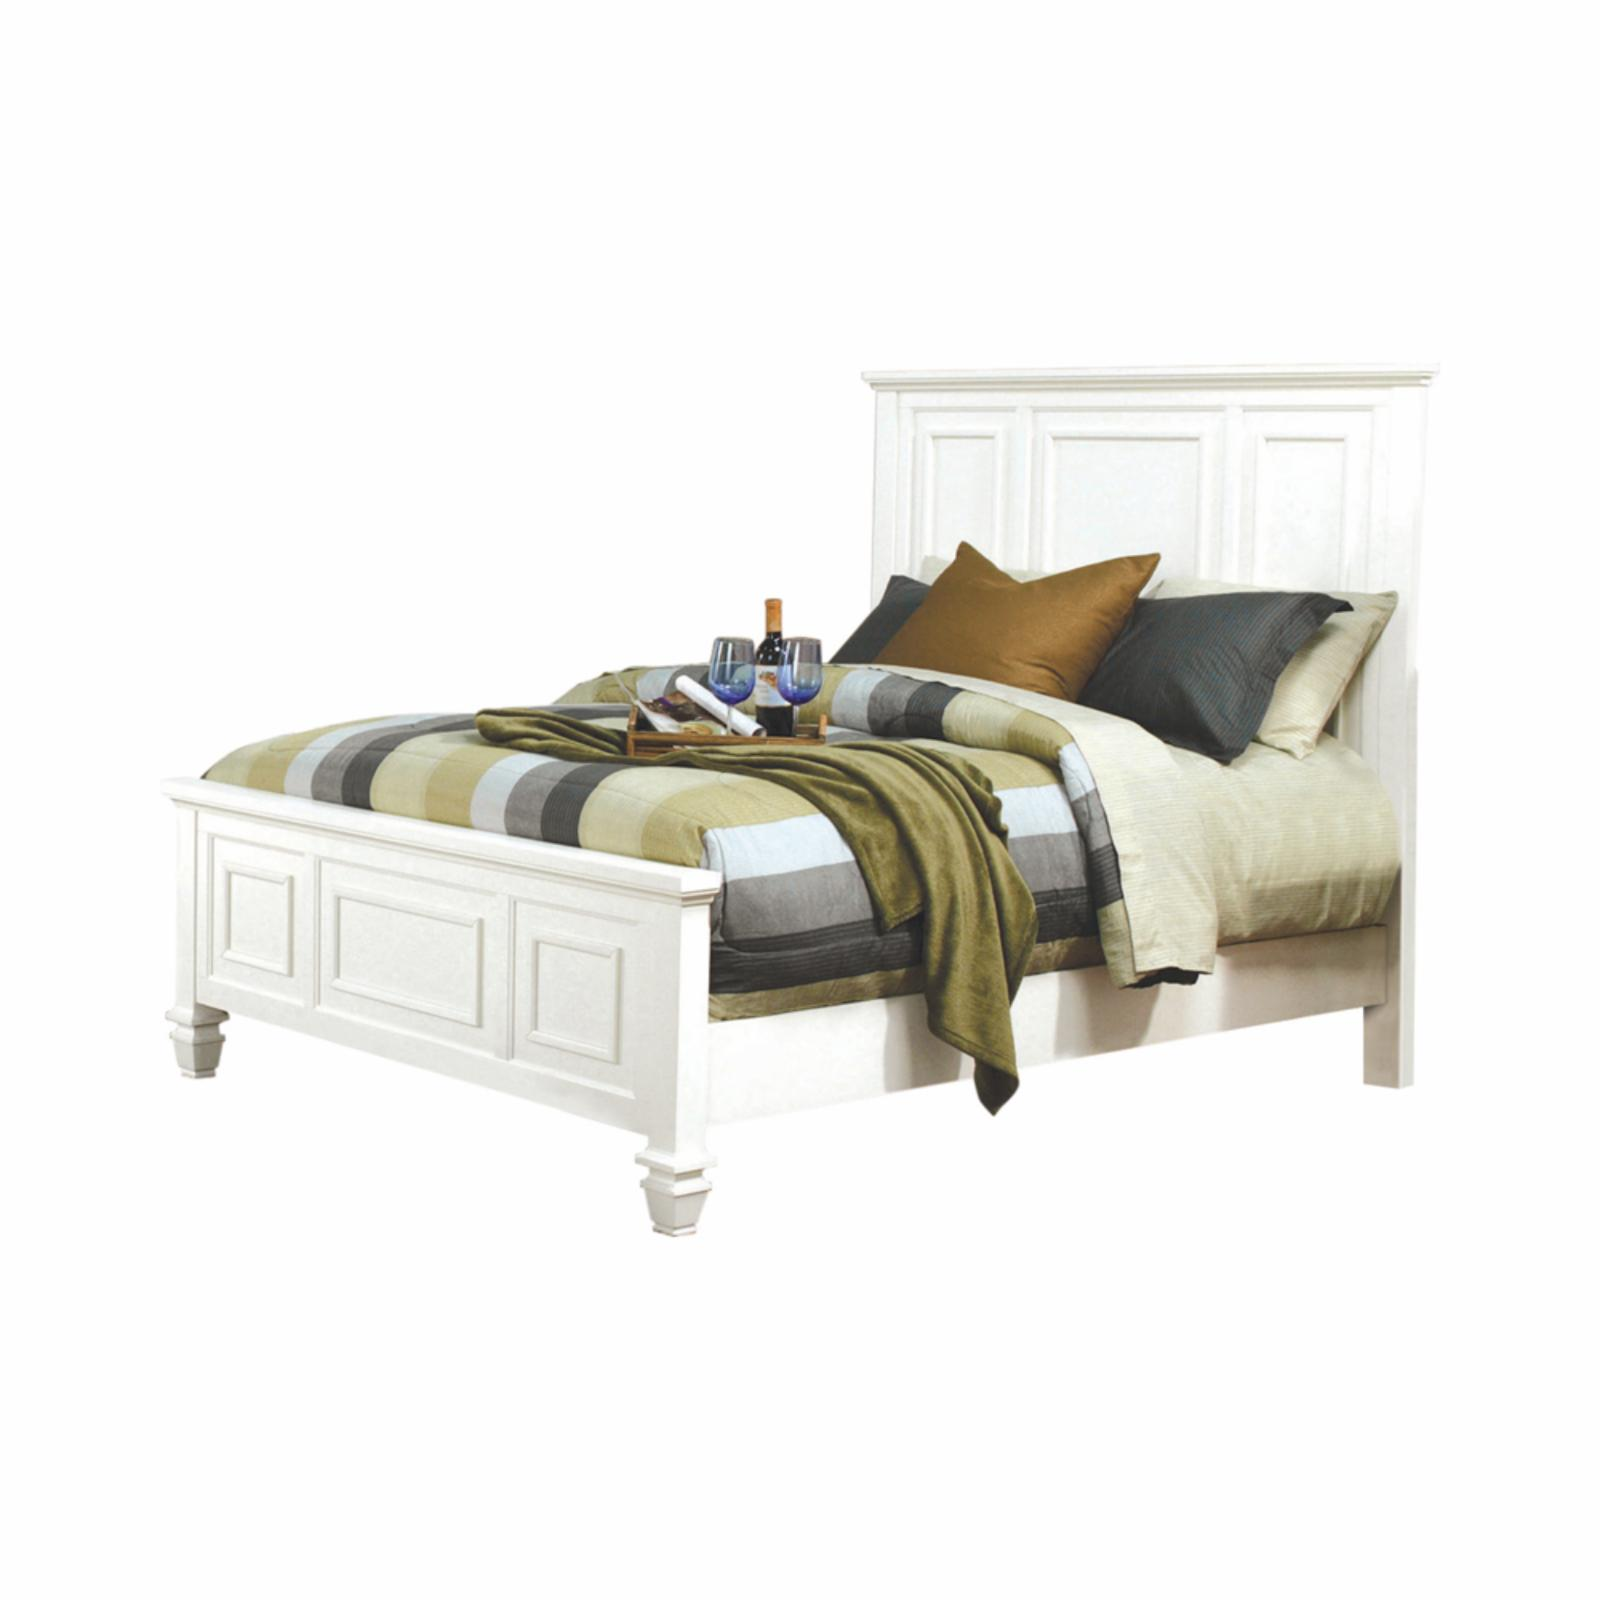 Coaster Furniture Sandy Beach Panel Bed White - 201301KW